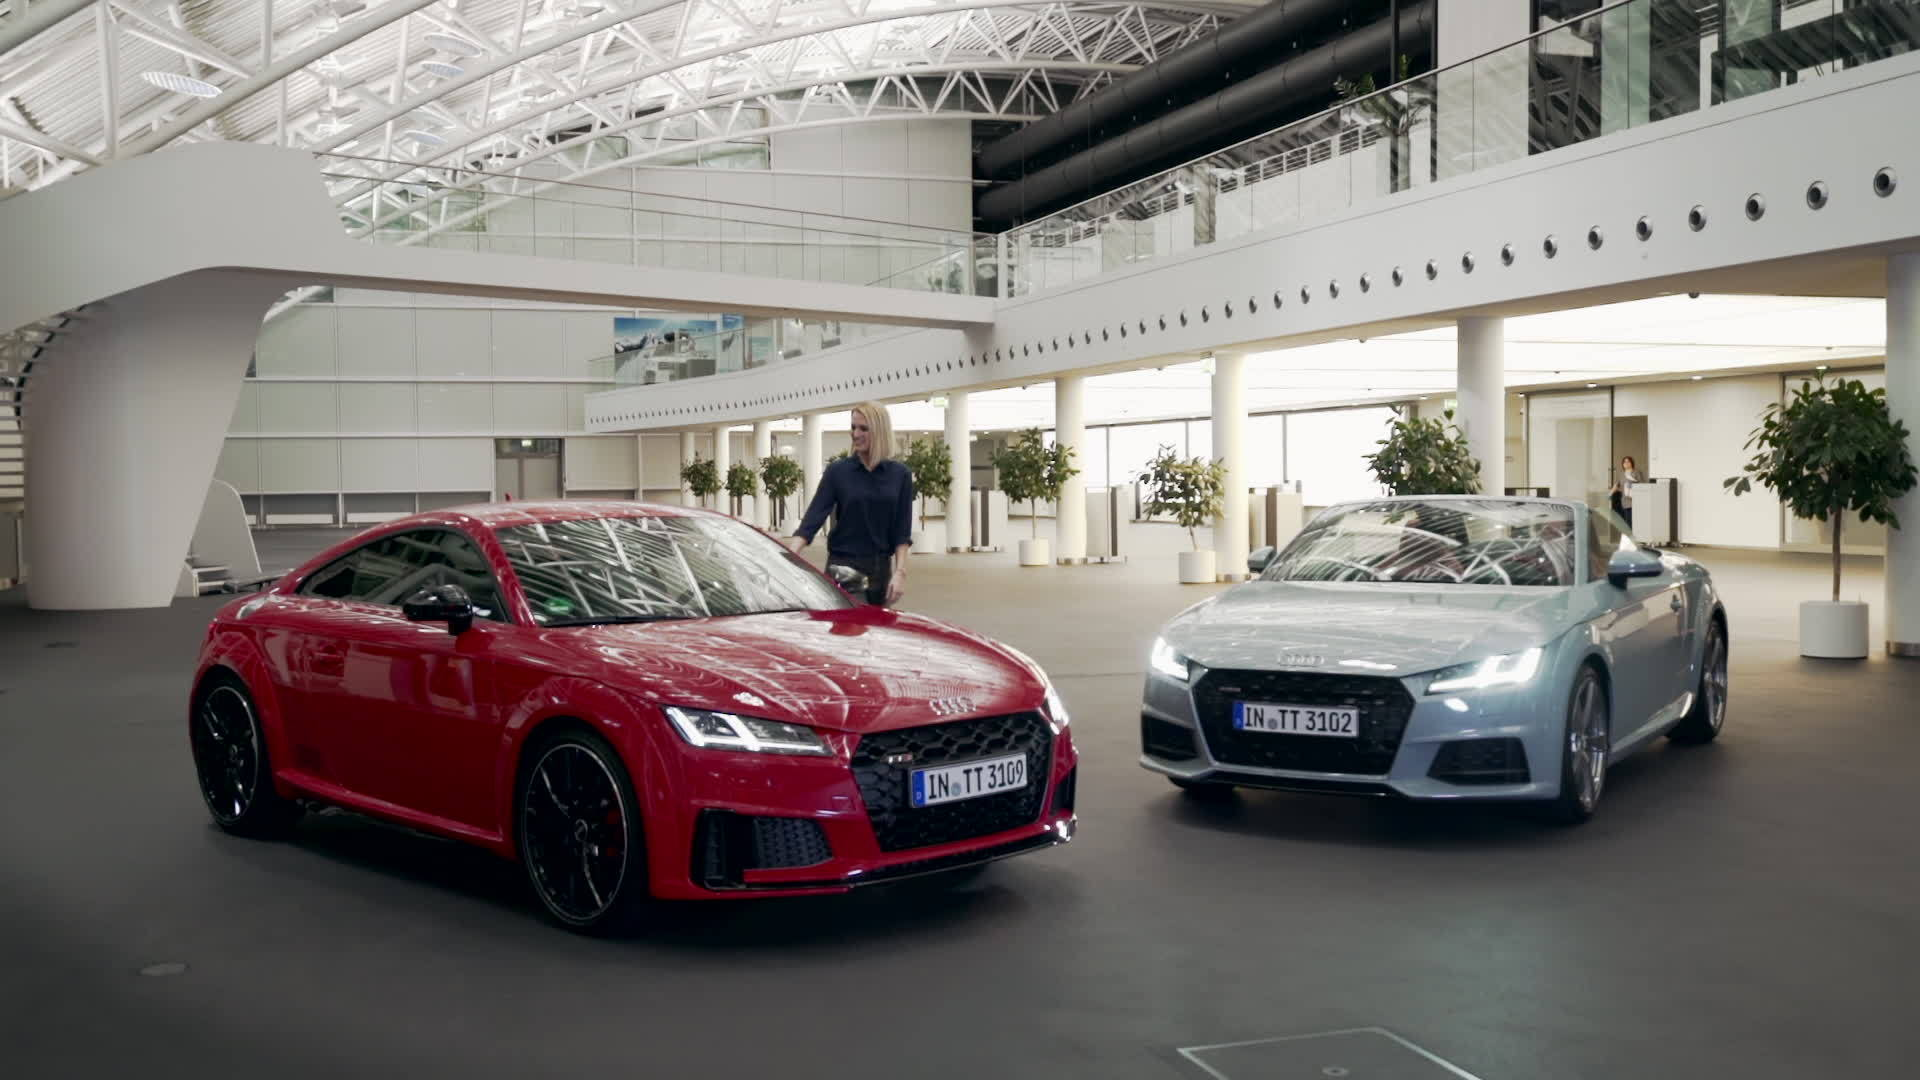 Ruth Hofmann presents Audi TT 20 years and the TT family